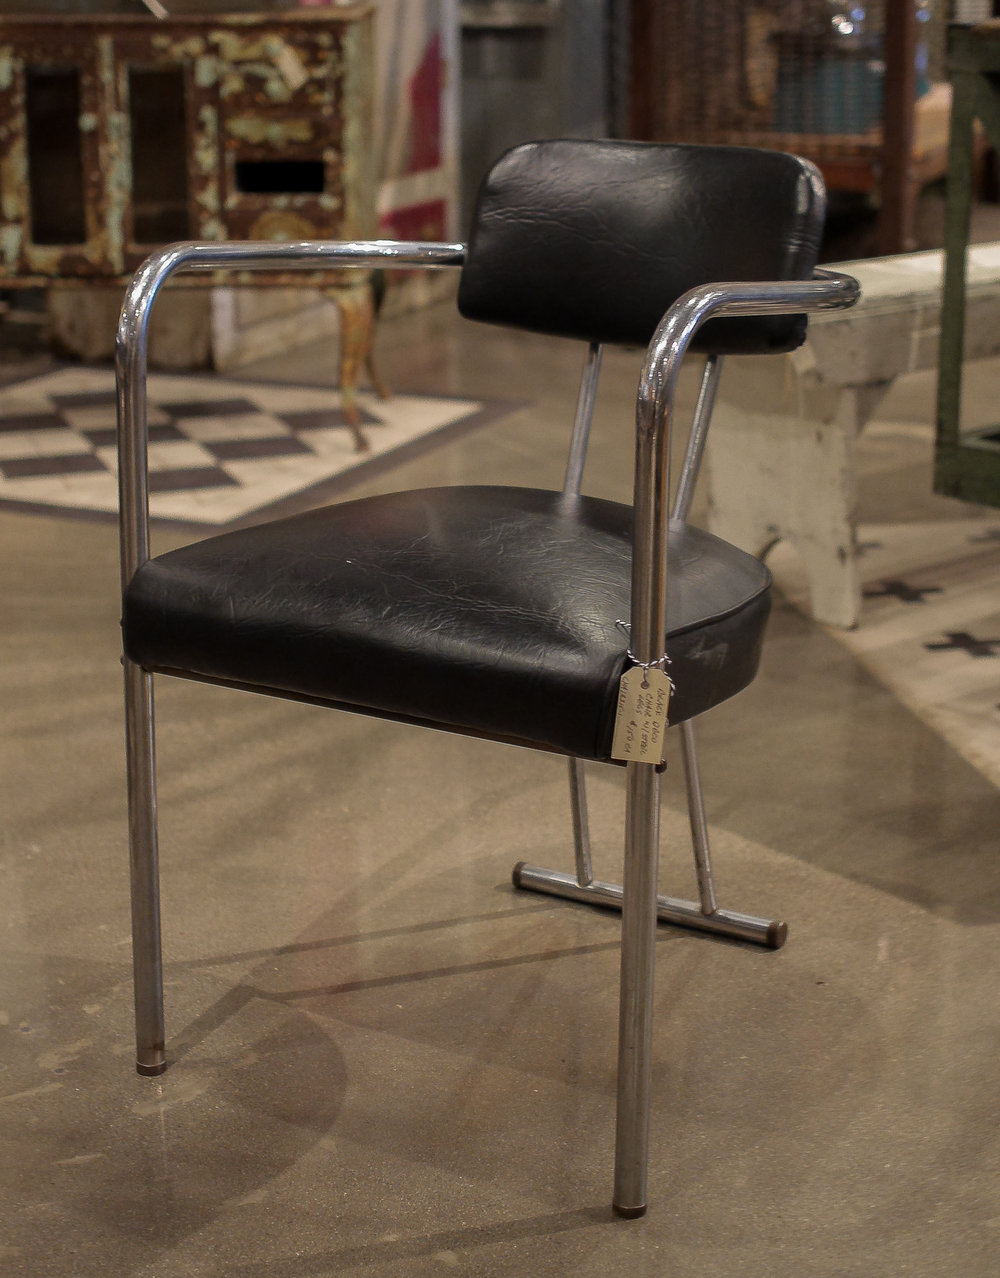 Black Deco Chair with Steel Legs.jpg